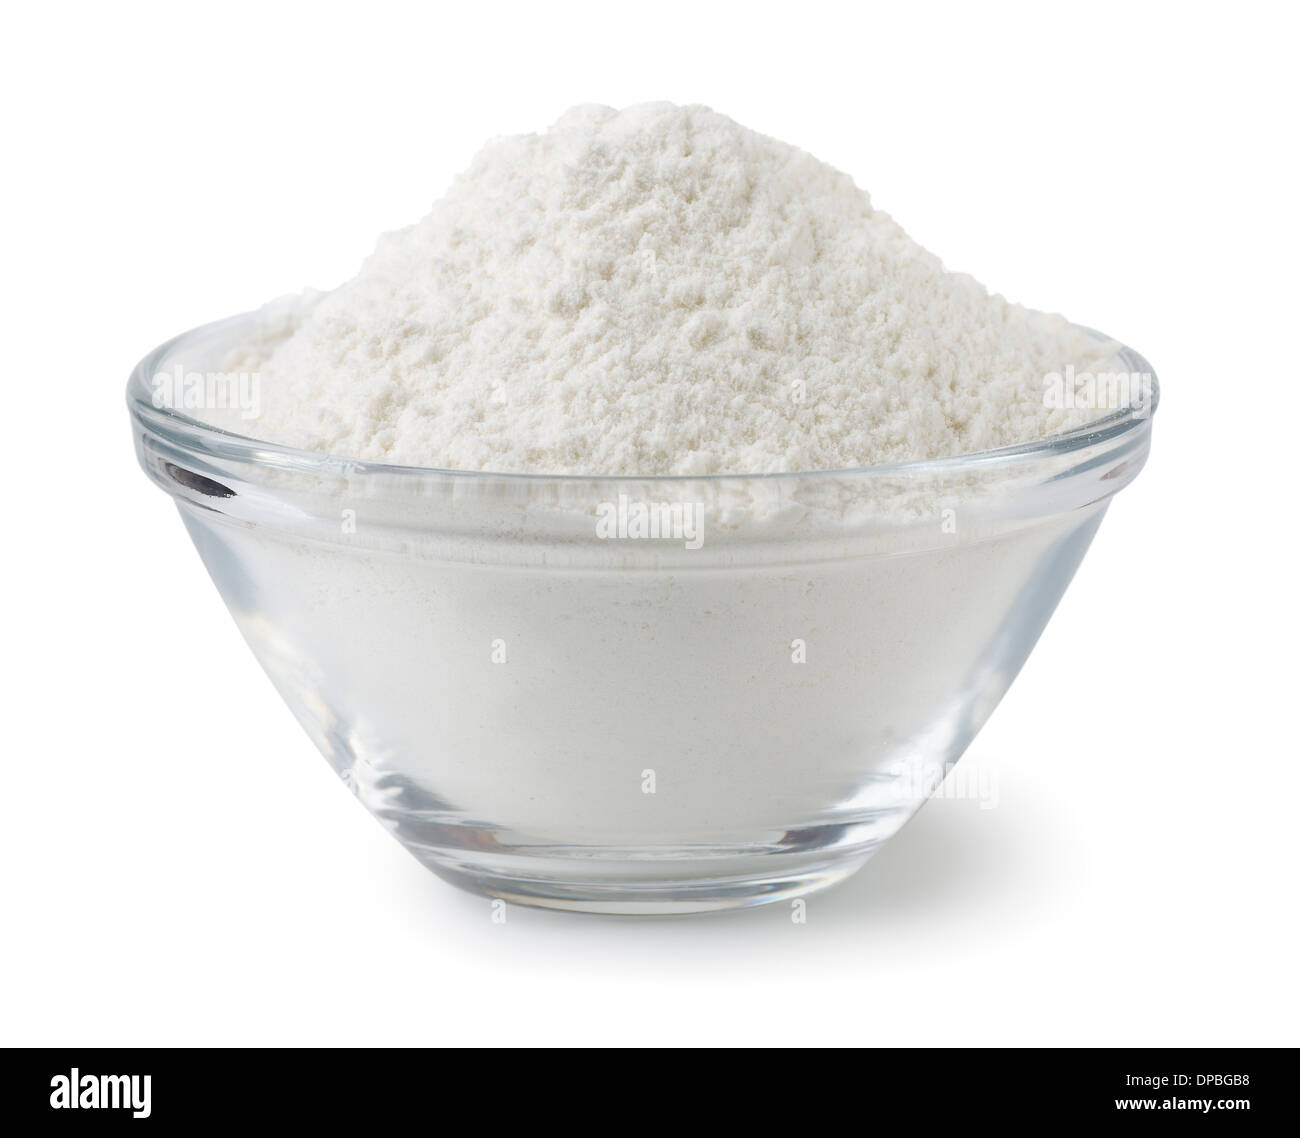 Glass bowl of wheat flour isolated on white - Stock Image